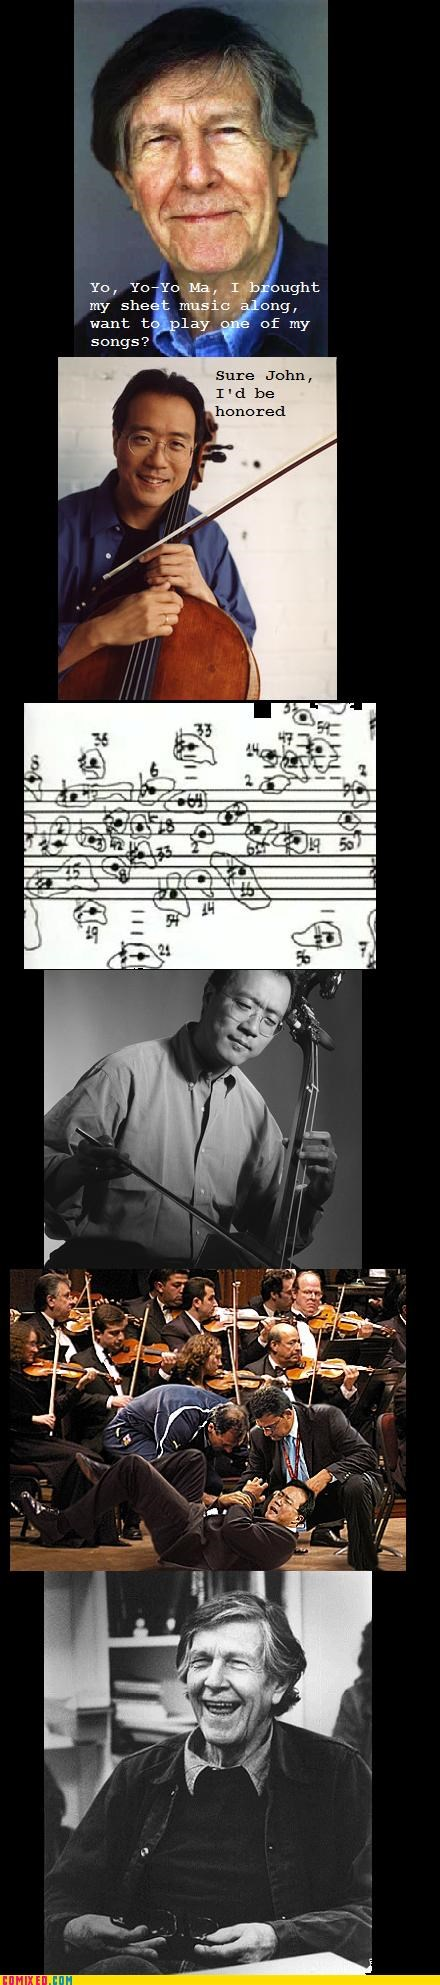 john cage lol Music ouch surprisingly highbrow Yo-Yo Ma